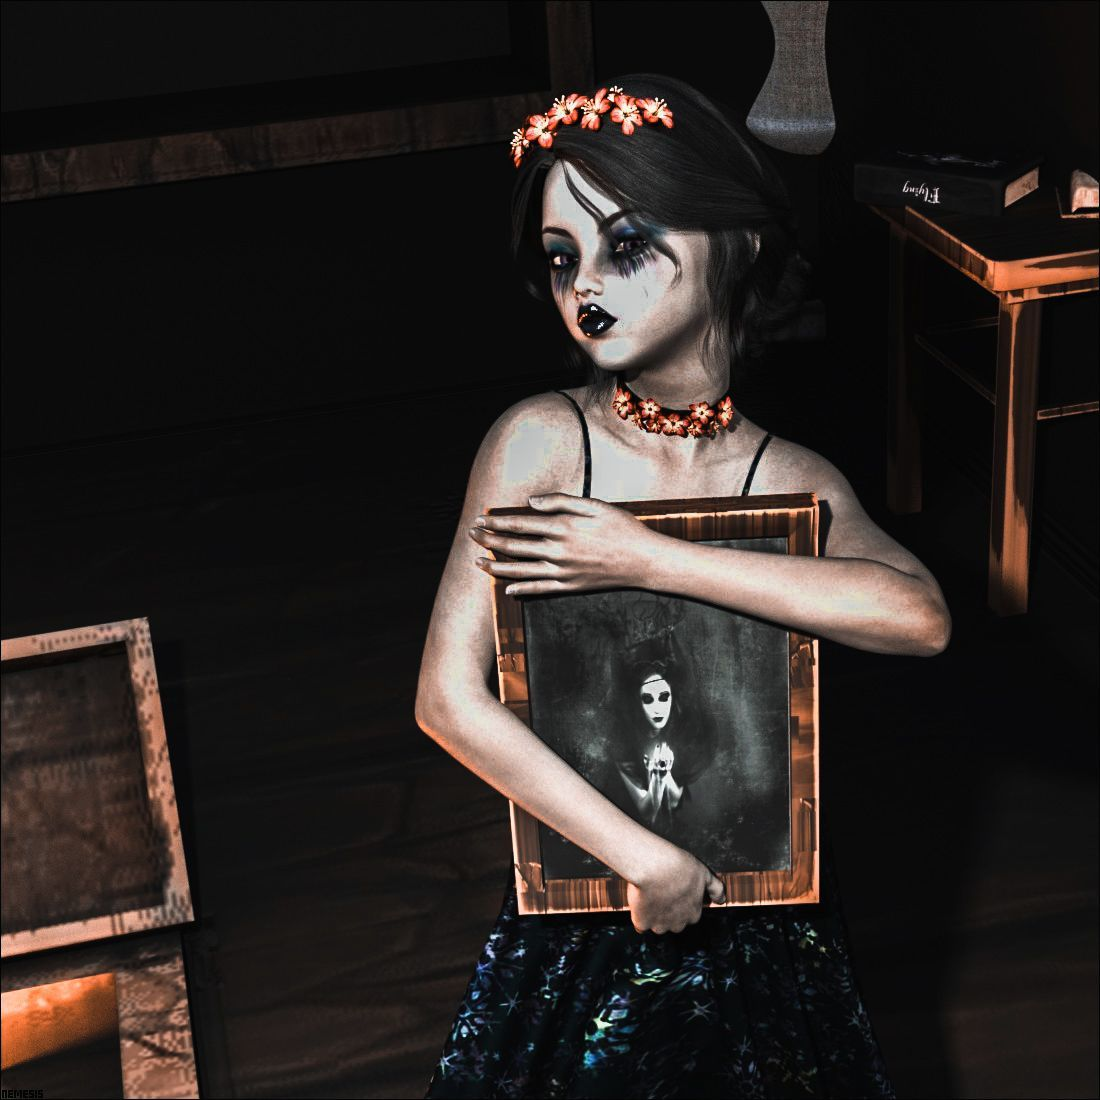 Gothic girl by nemesis74s